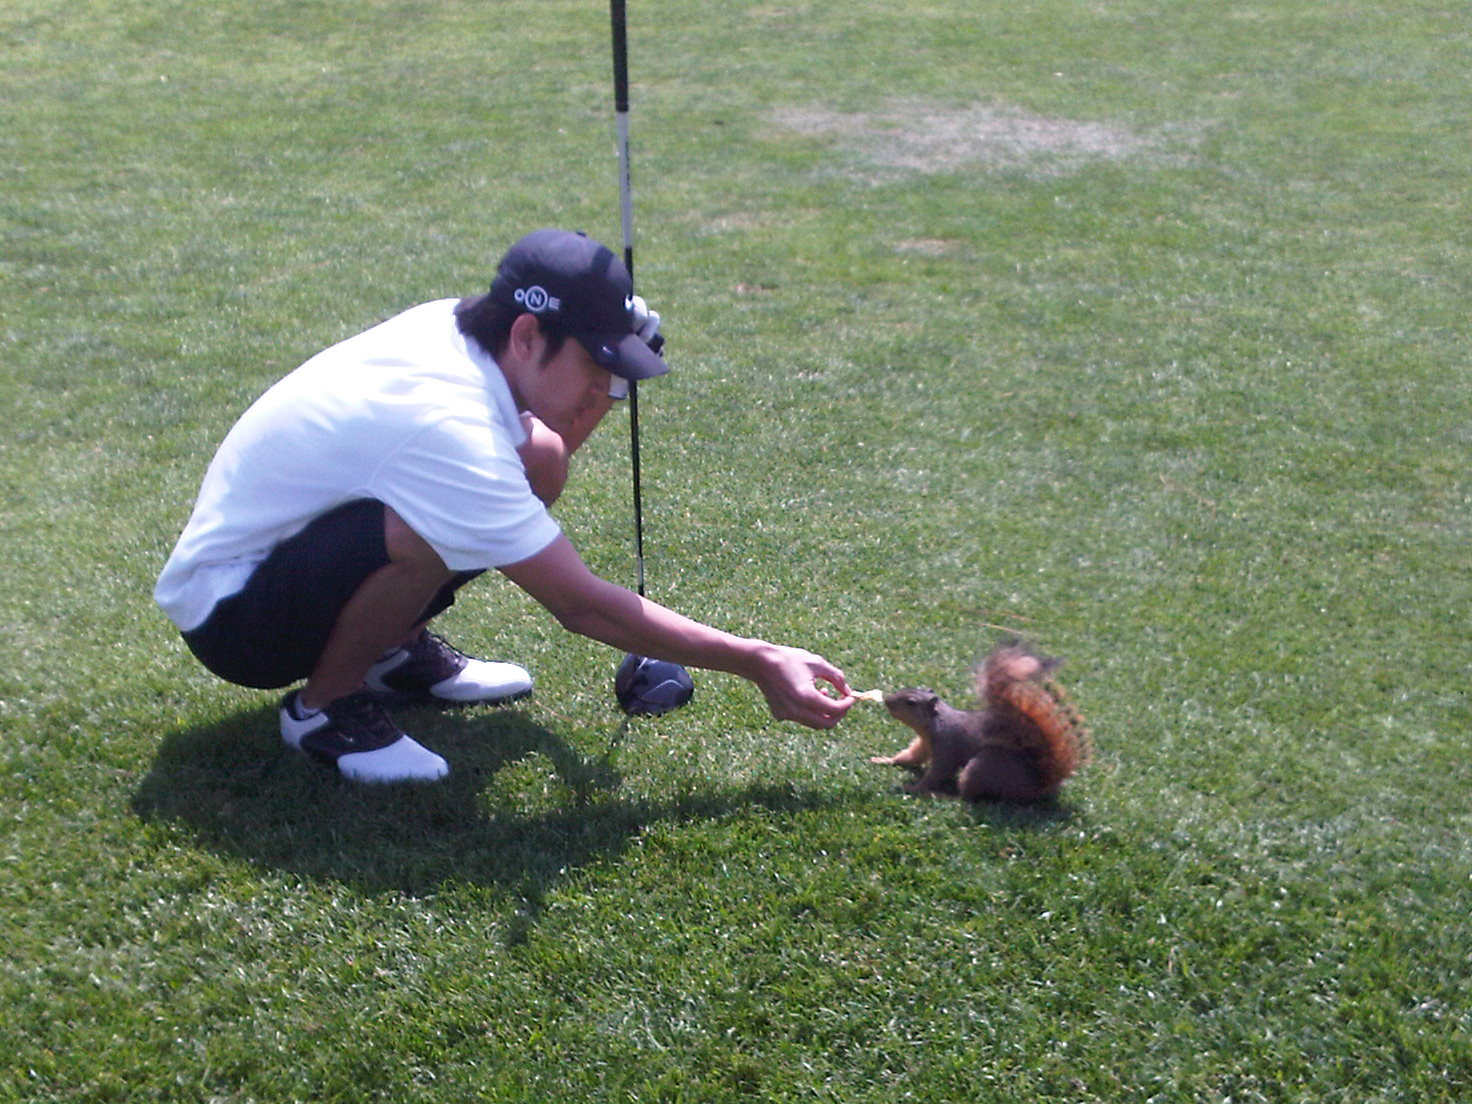 SQUARE GROOVE - SQUARE ON THE SCORE CARD - SQUARE STANCE  - SQUIRREL - STABLEFORD SCORING